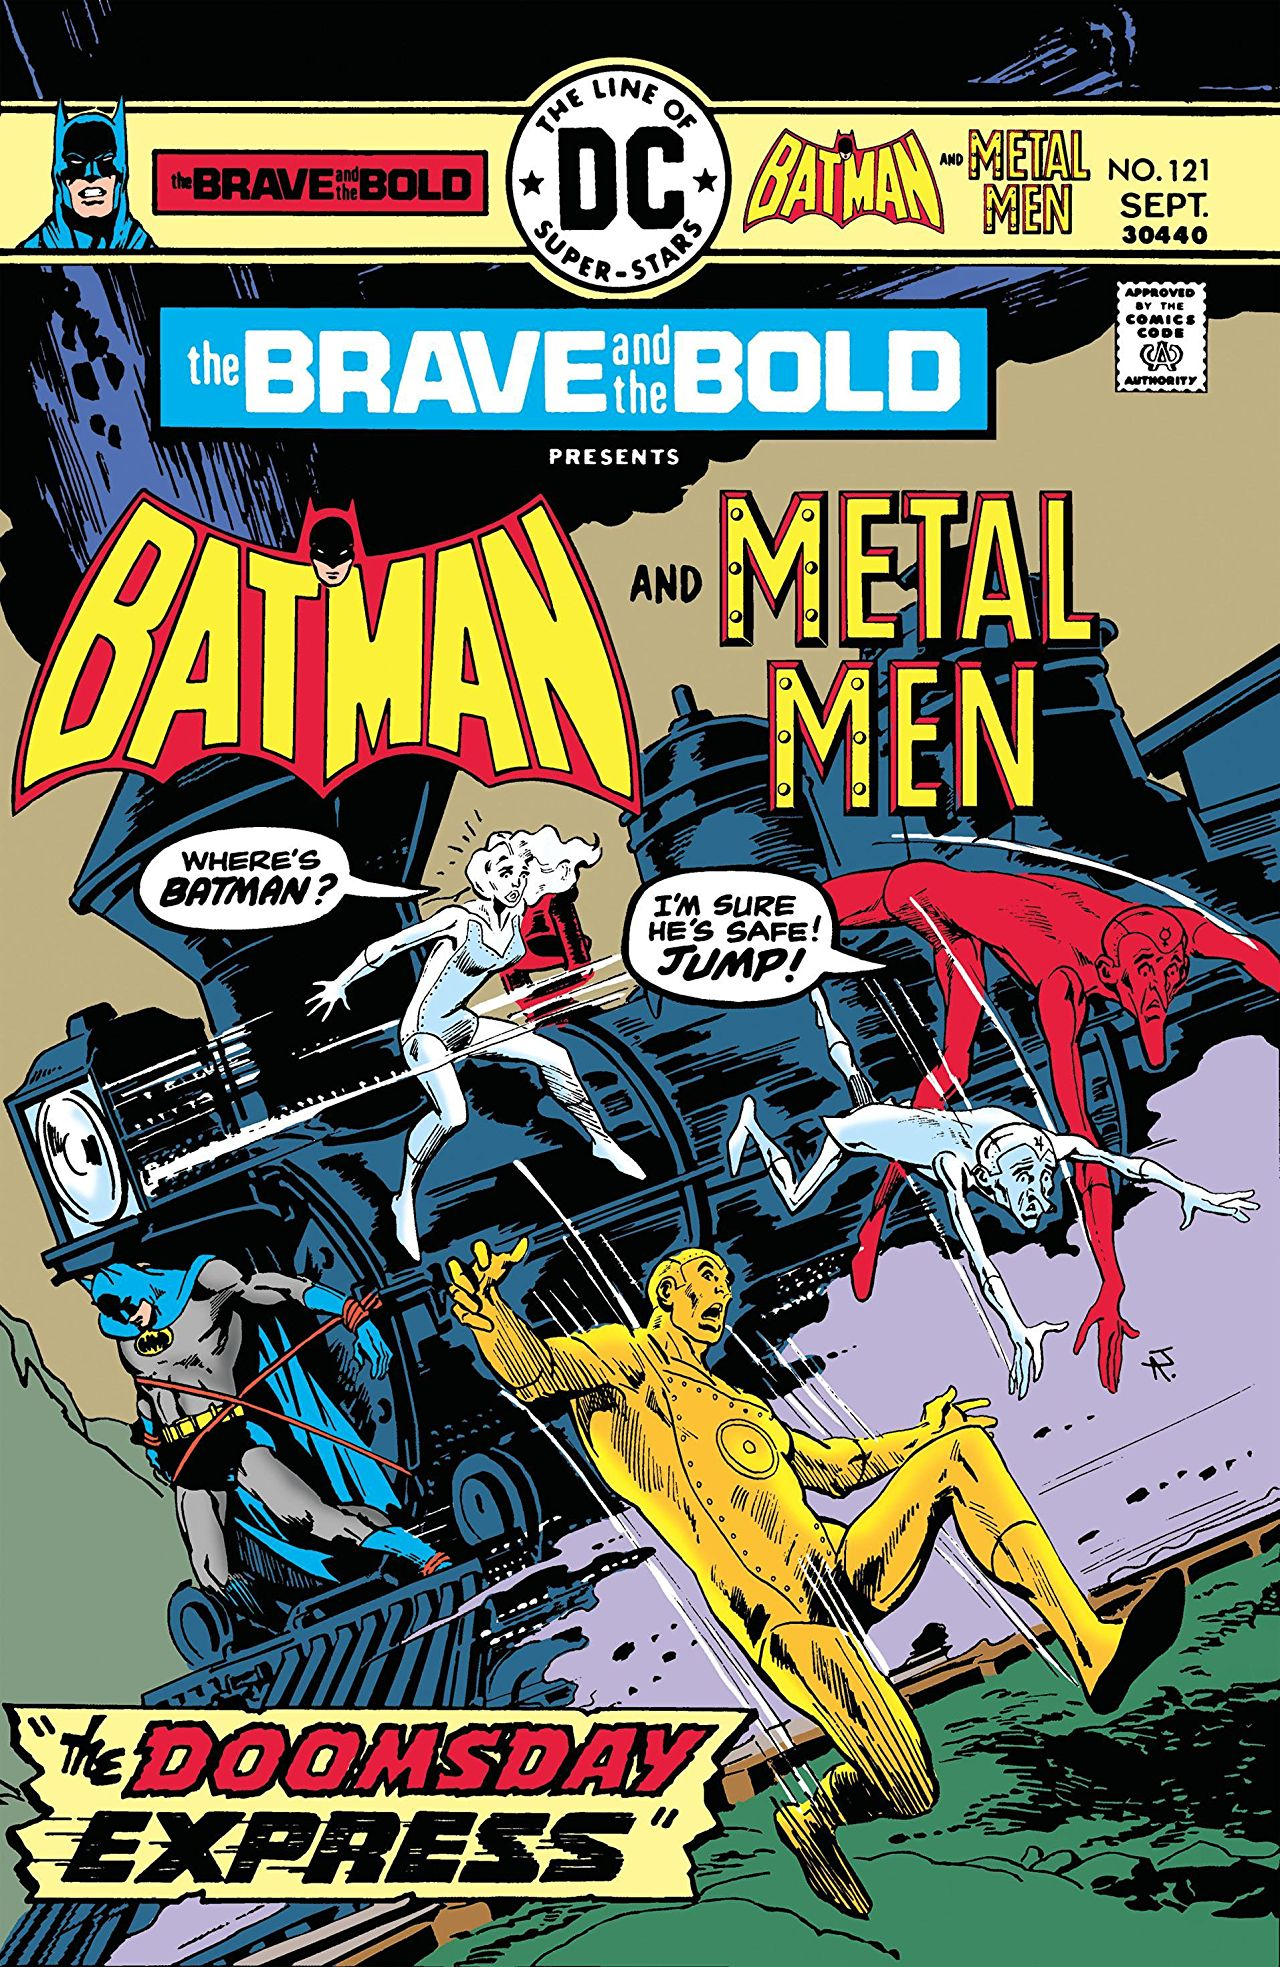 Brave & the Bold #121 cover by Jim Aparo